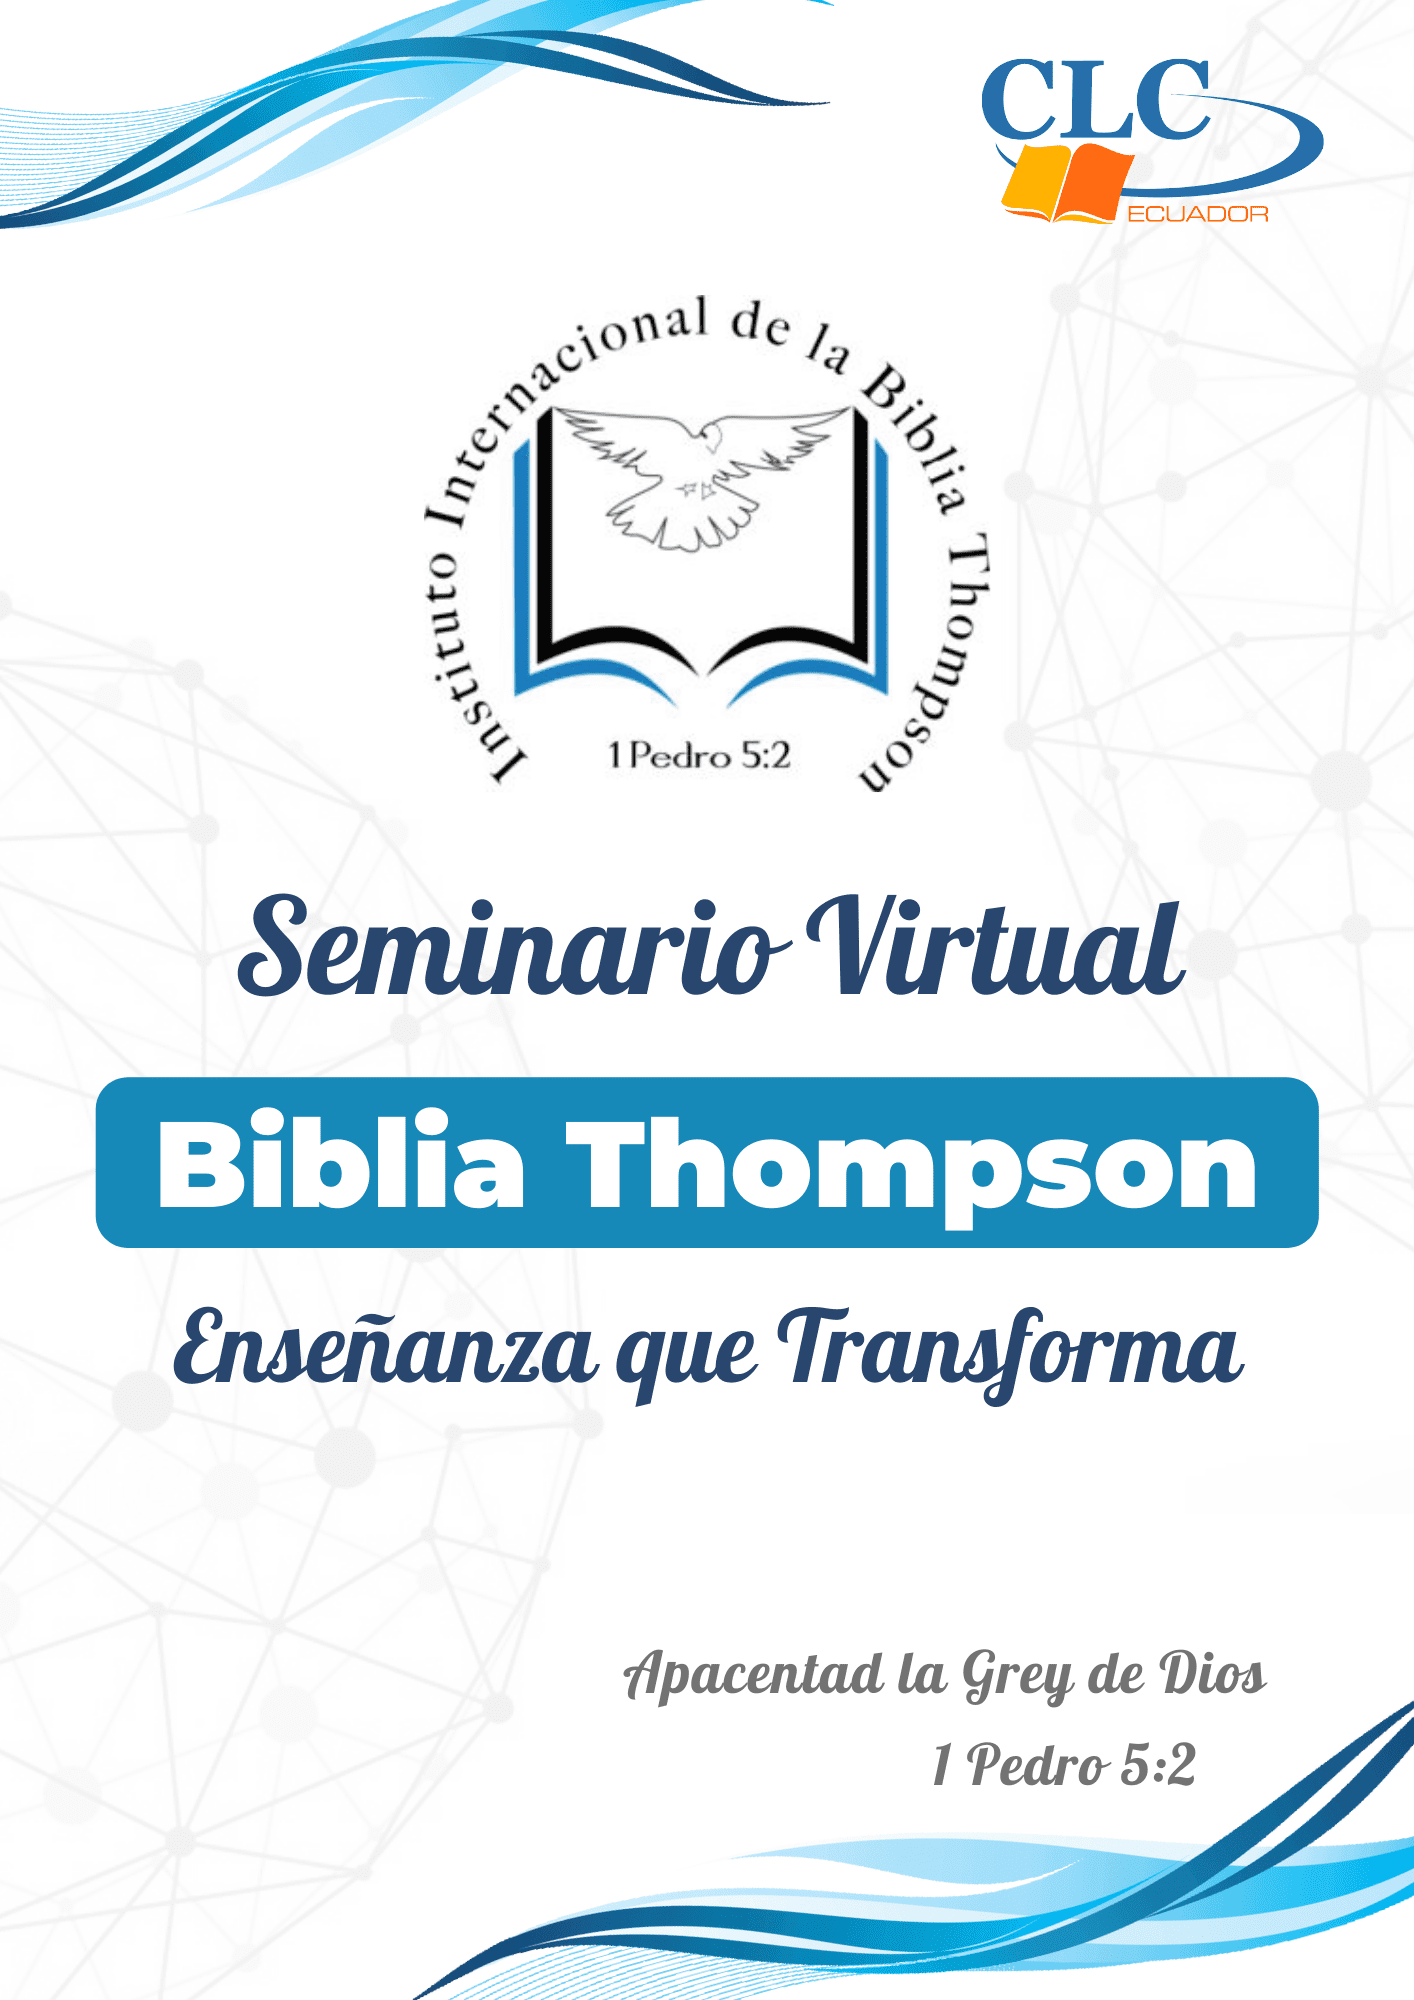 Seminario Virtual de la Biblia Thompson